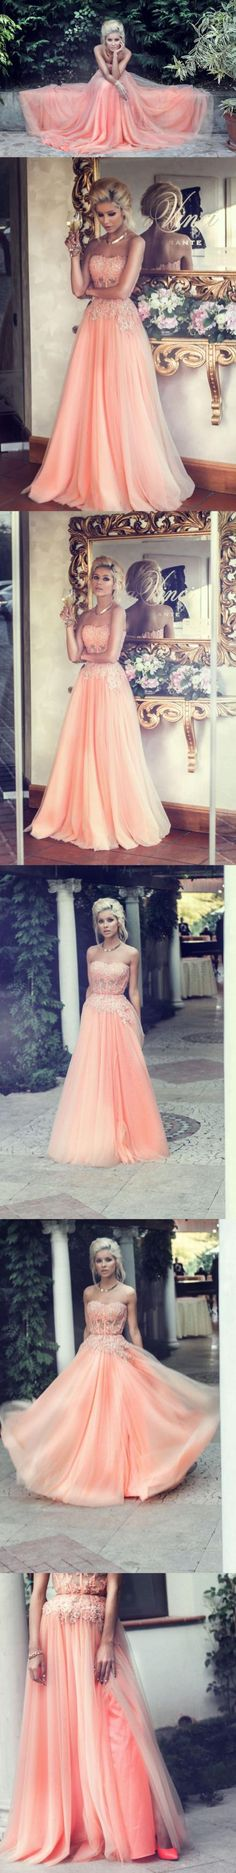 New Fashion Girls Party Dresses Beaded Bodice Off Shoulder Long Prom Dresses Evening Gown 2015 Prom Dresses, Prom Dress